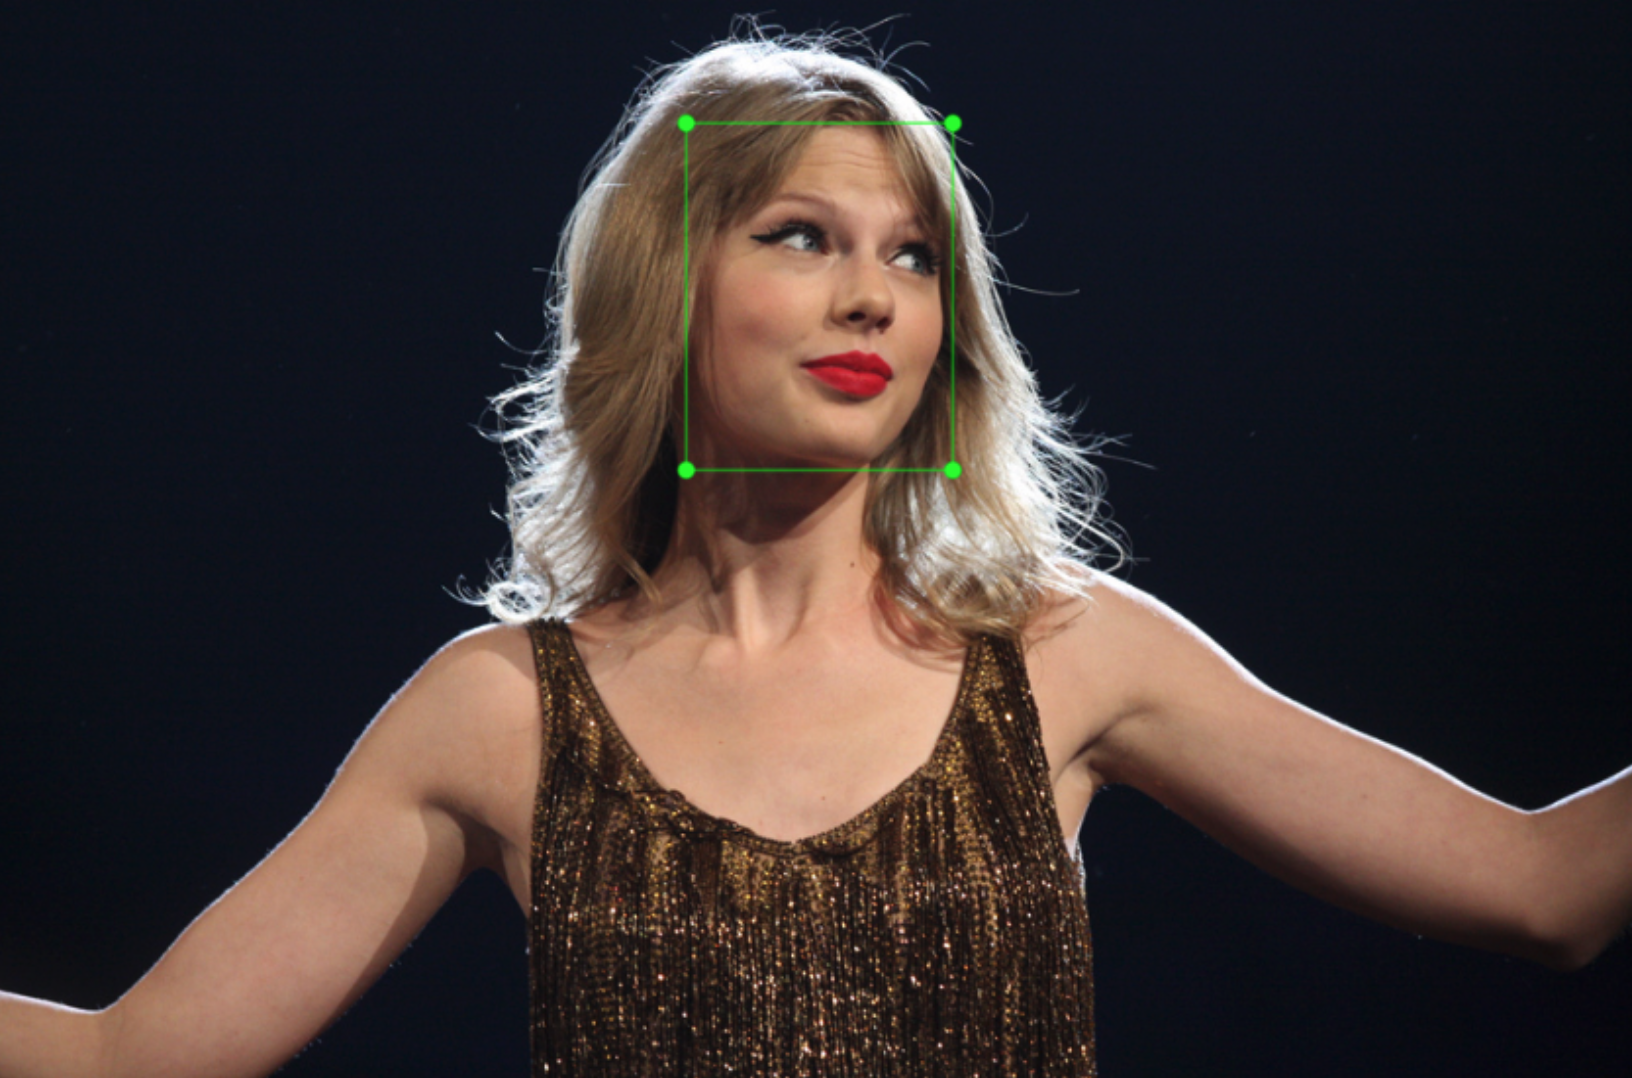 Build a Taylor Swift detector with the TensorFlow Object